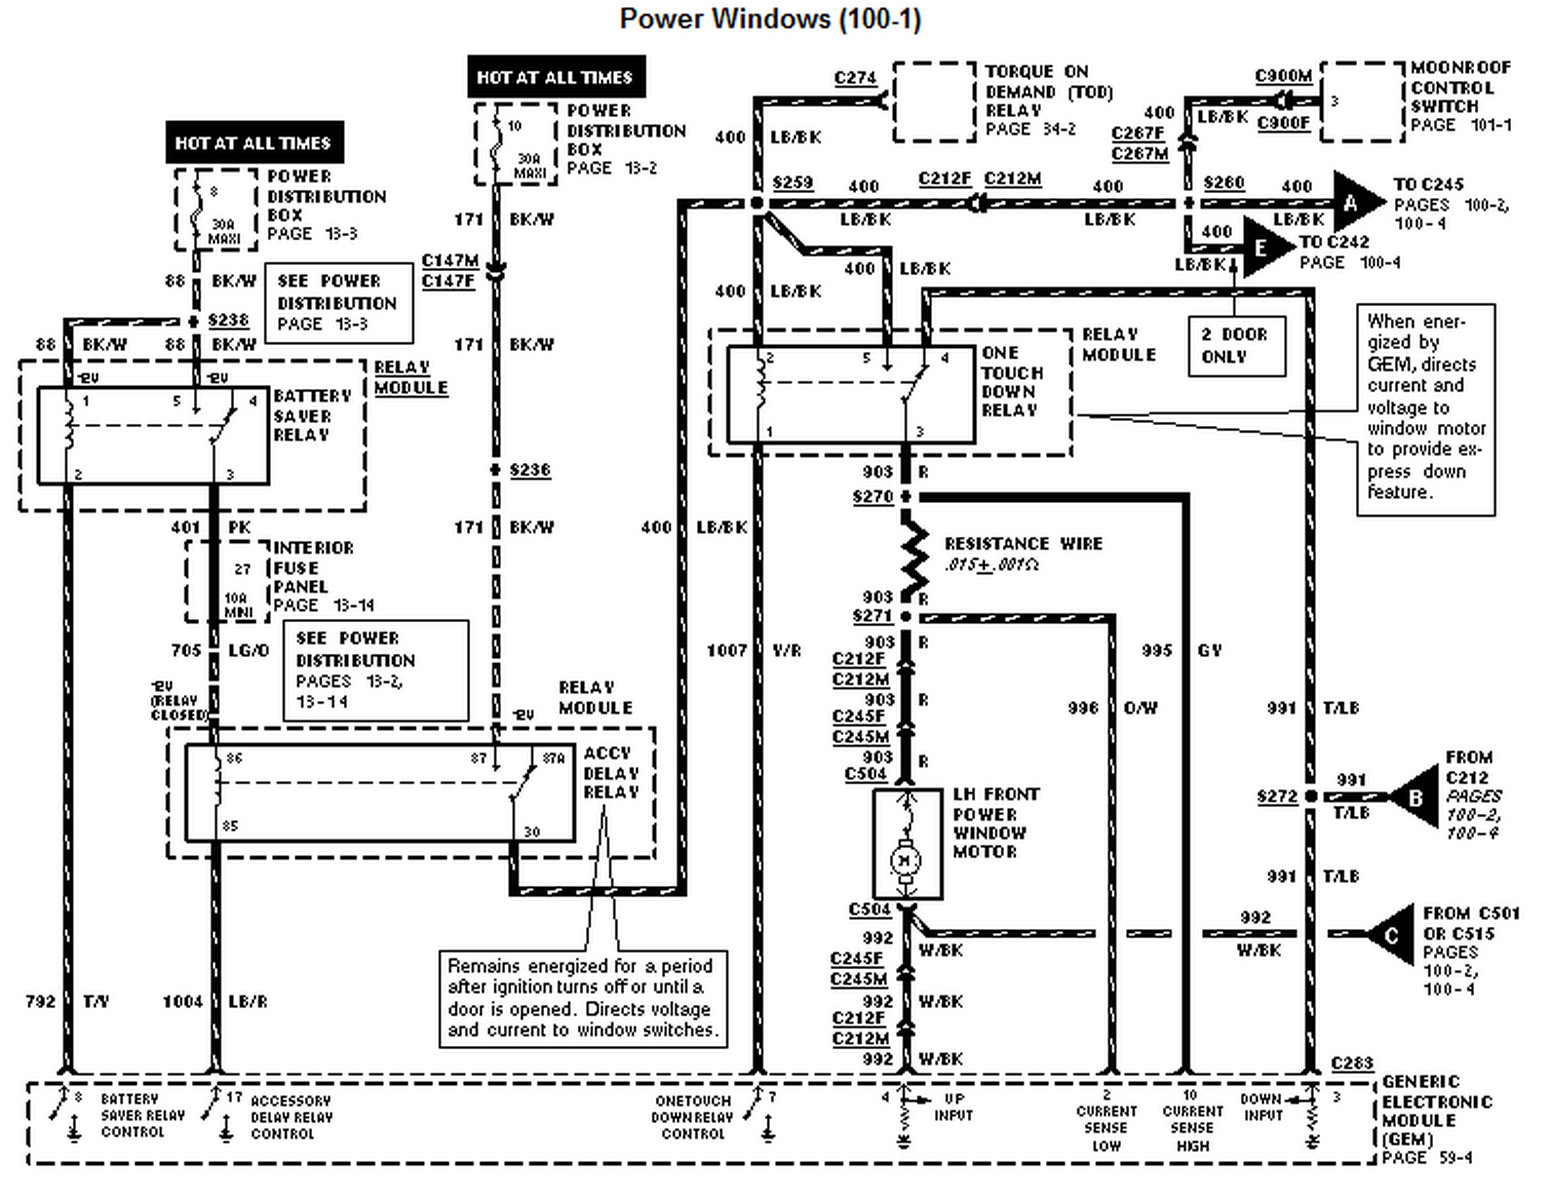 2010 03 06_223203_97_Explorer_PW_wiring_diagram i have a 97' explorer 4dr 4x4 the driver side control panel for 2003 ford explorer window wiring diagram at n-0.co